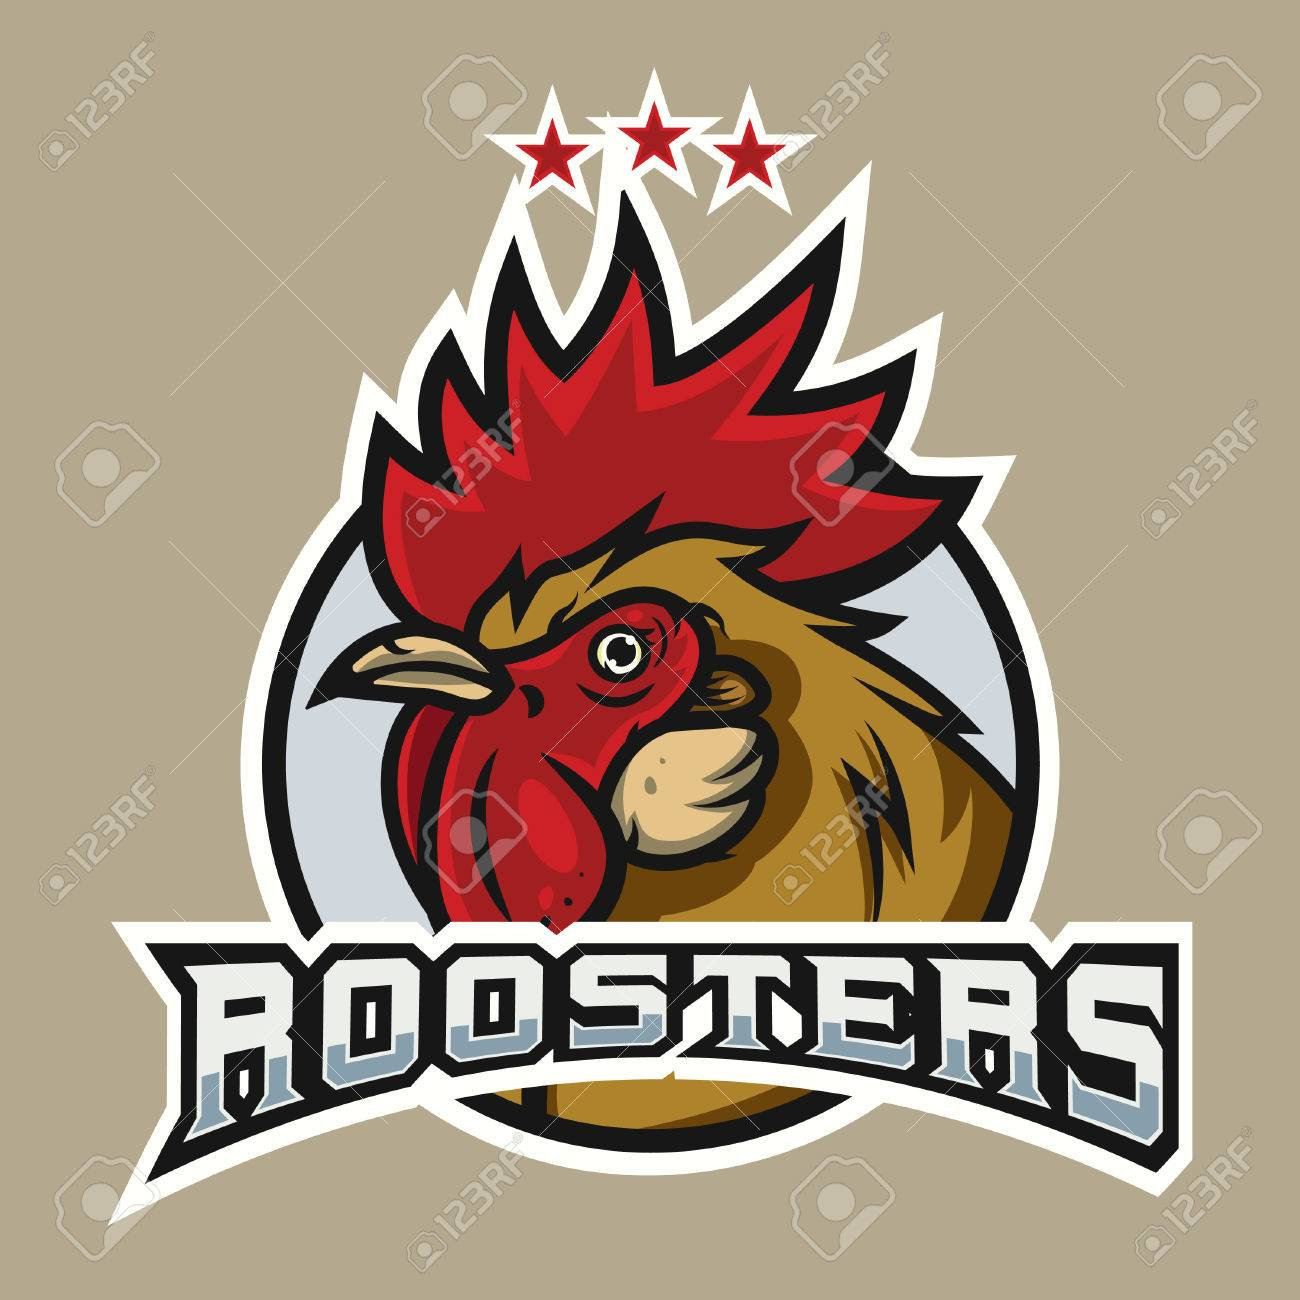 detailed sports logo template with angry face emotion rooster